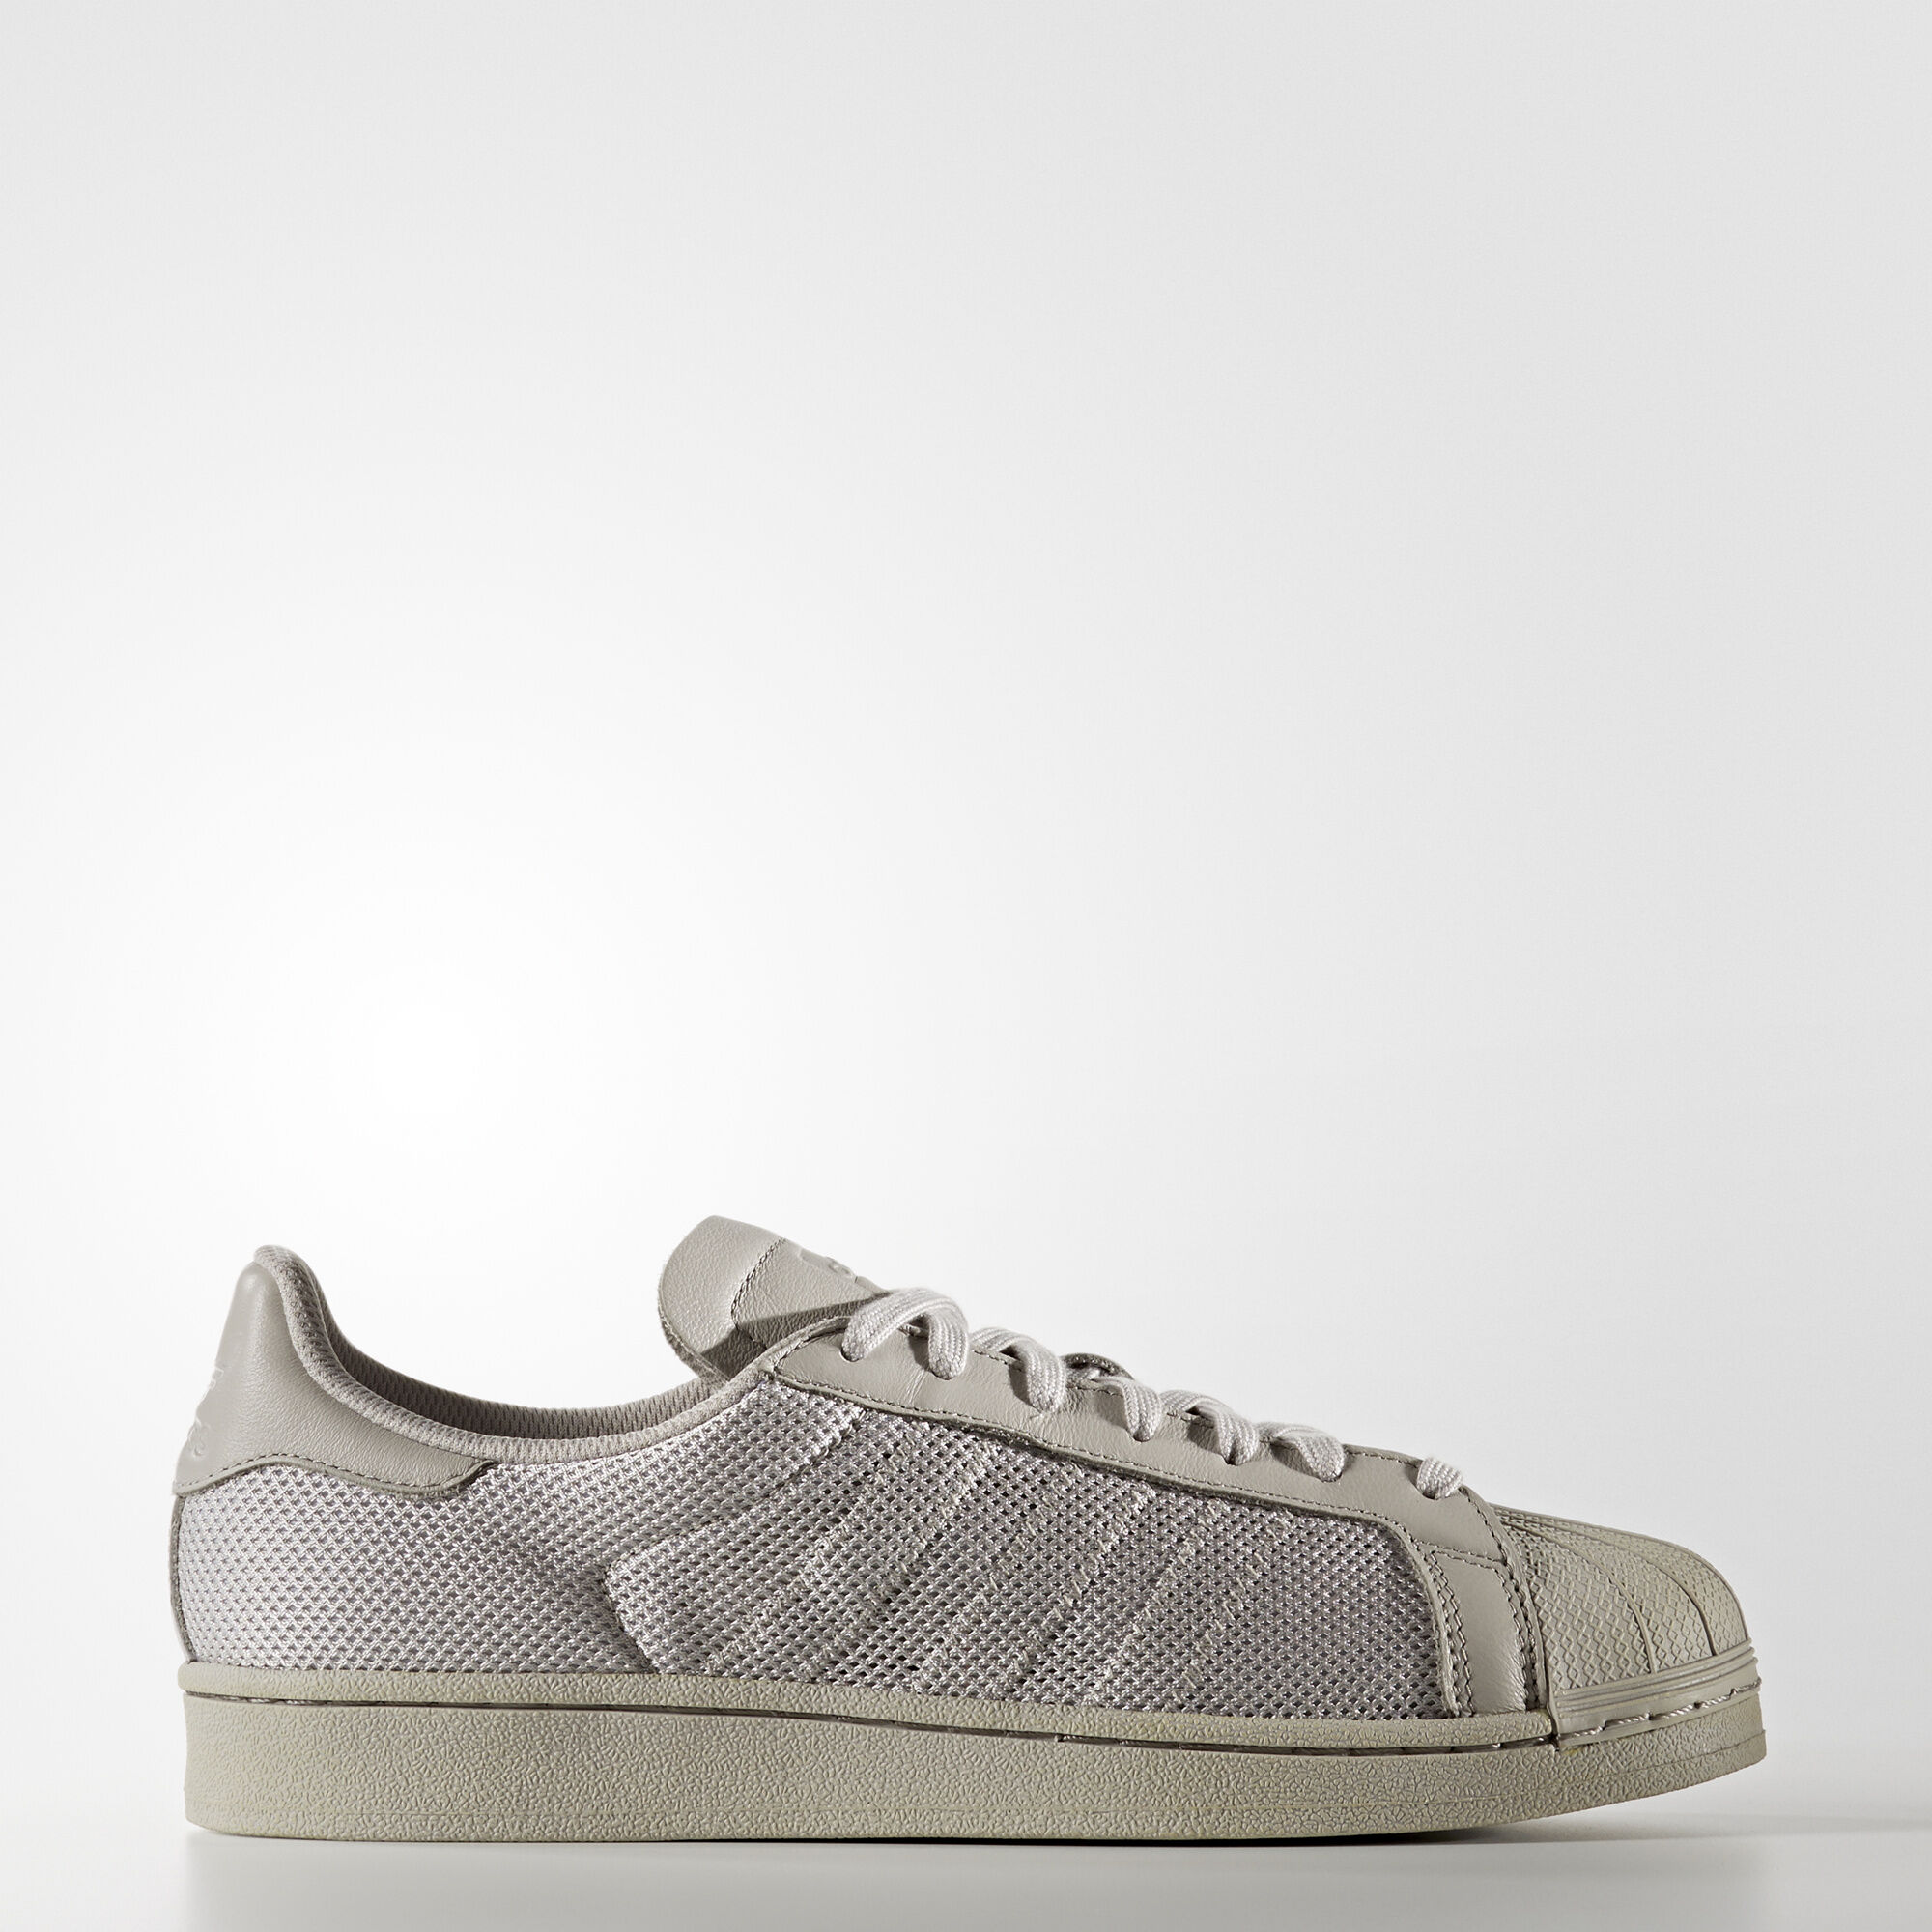 adidads pride pack gouden